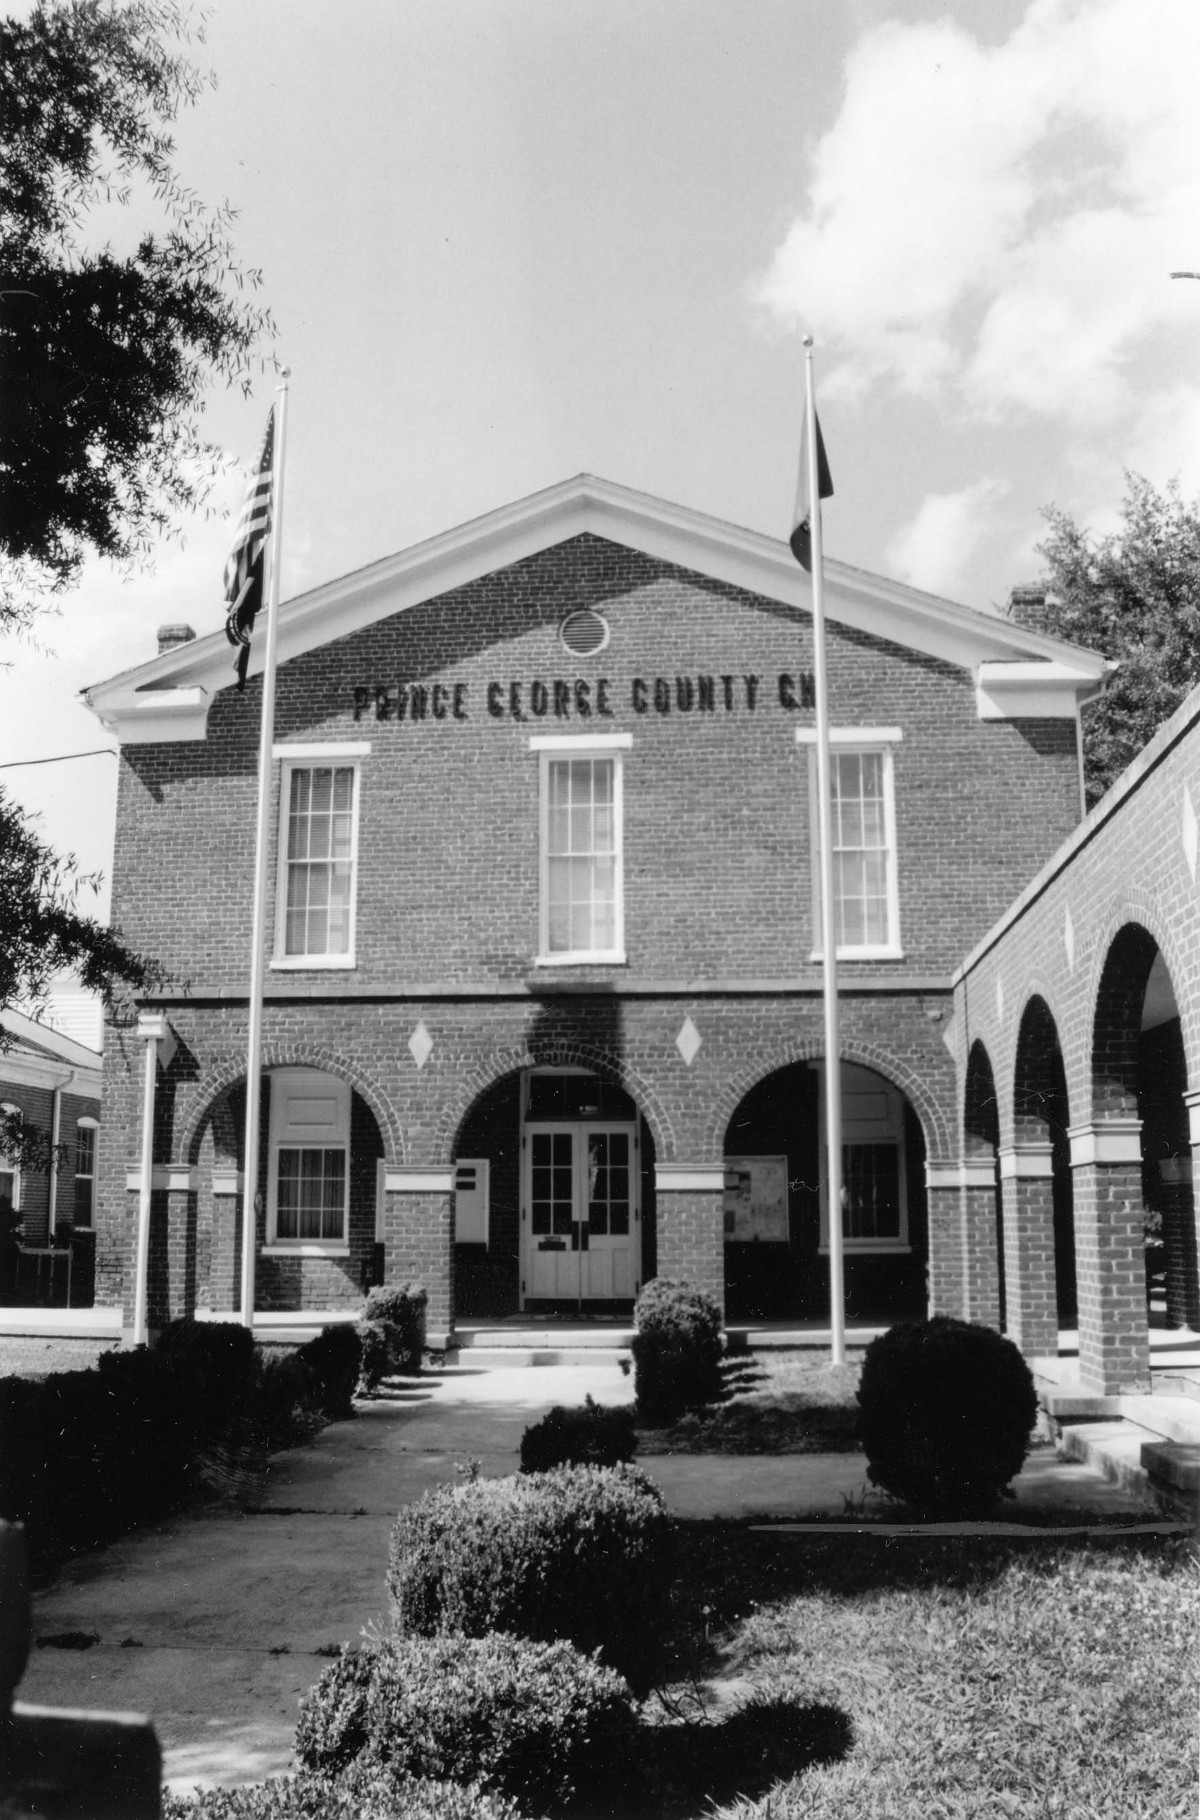 Prince George County Courthouse Historic District